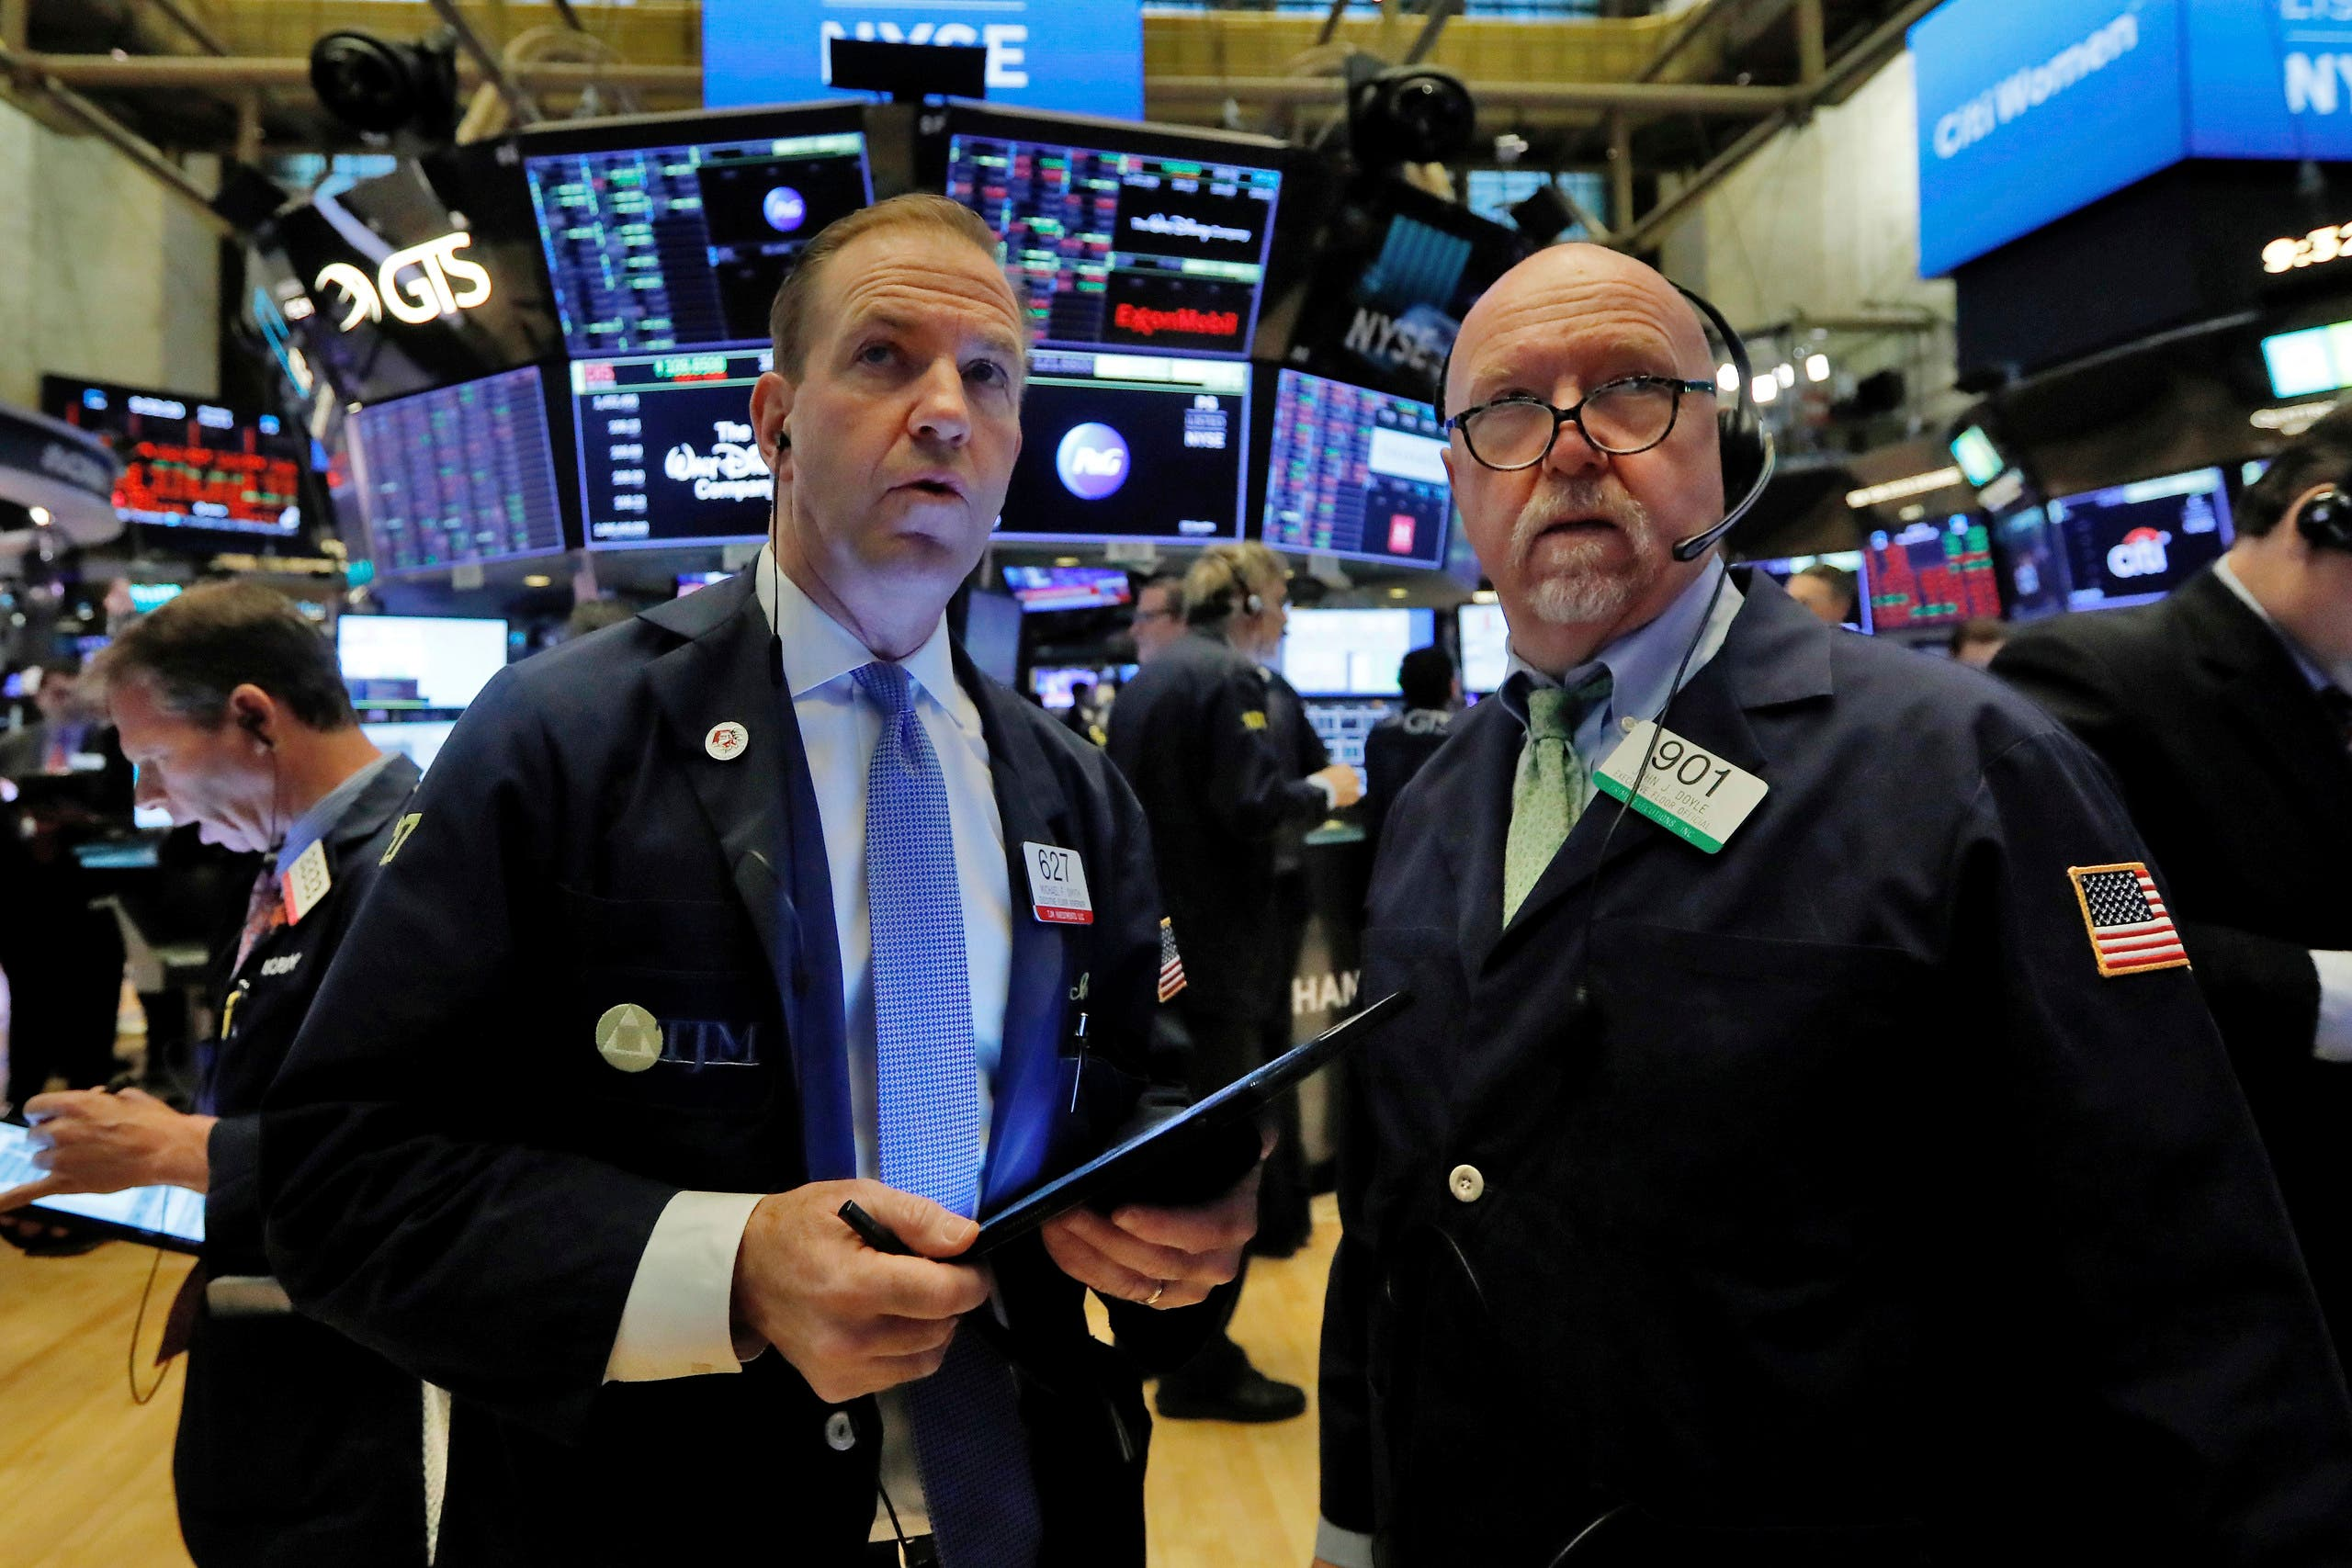 The Dow Jones Industrial Average plummeted 1,600 points, or 6 percent, following similar drops in Europe after a fight among major crude-producing countries jolted investors already on edge about the widening fallout from the outbreak of the new coronavirus. (AP)